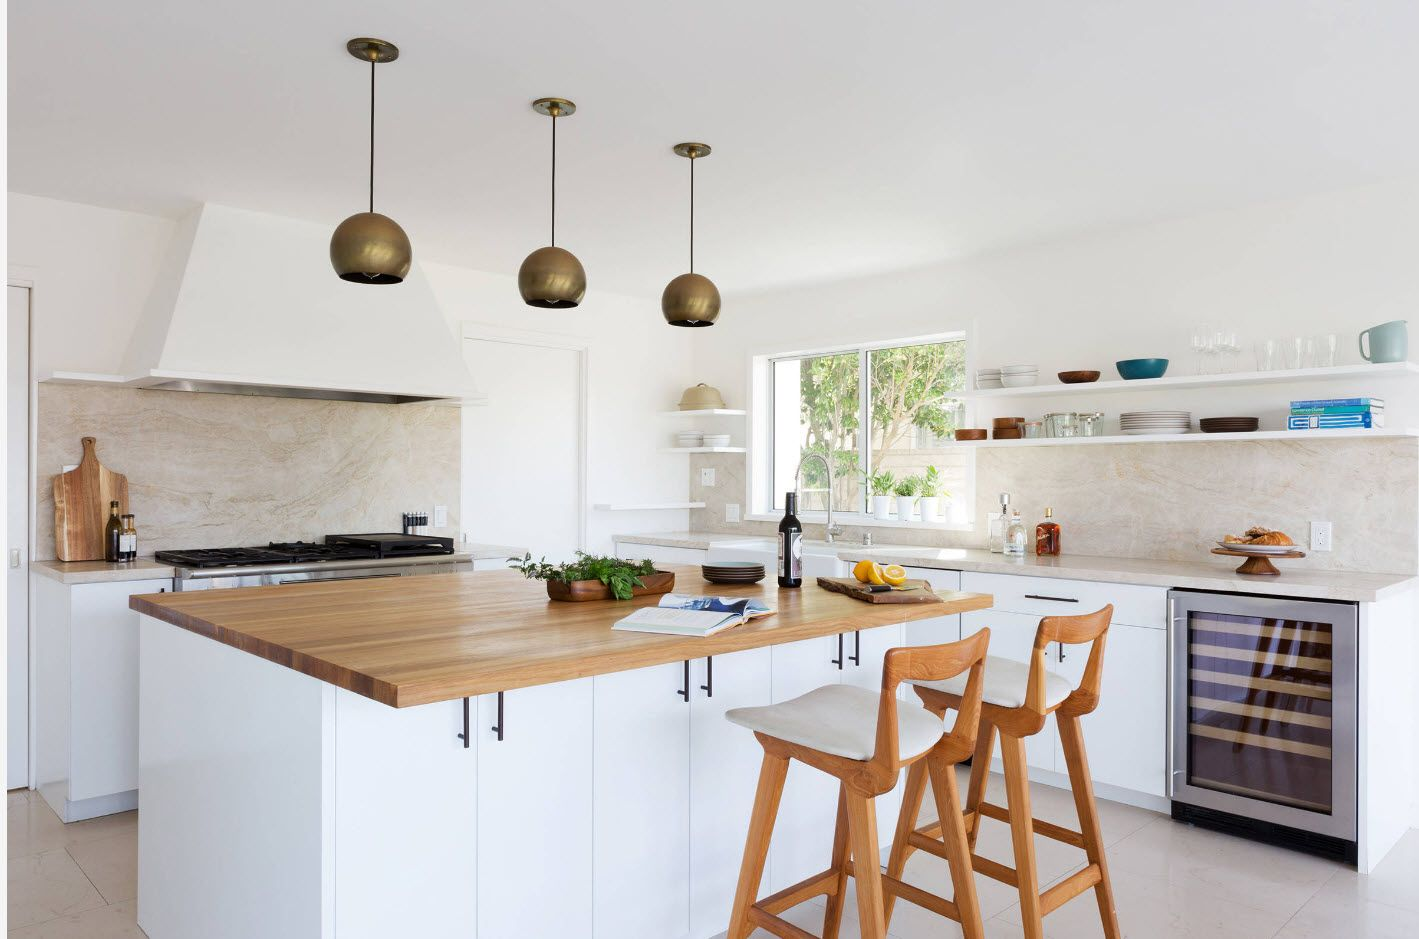 40 Square Feet Kitchen Modern Dedign Ideas & Layout Types. Light wooden kitchen tabletop and bar stools with white atmosphere and suspended round gold lamps